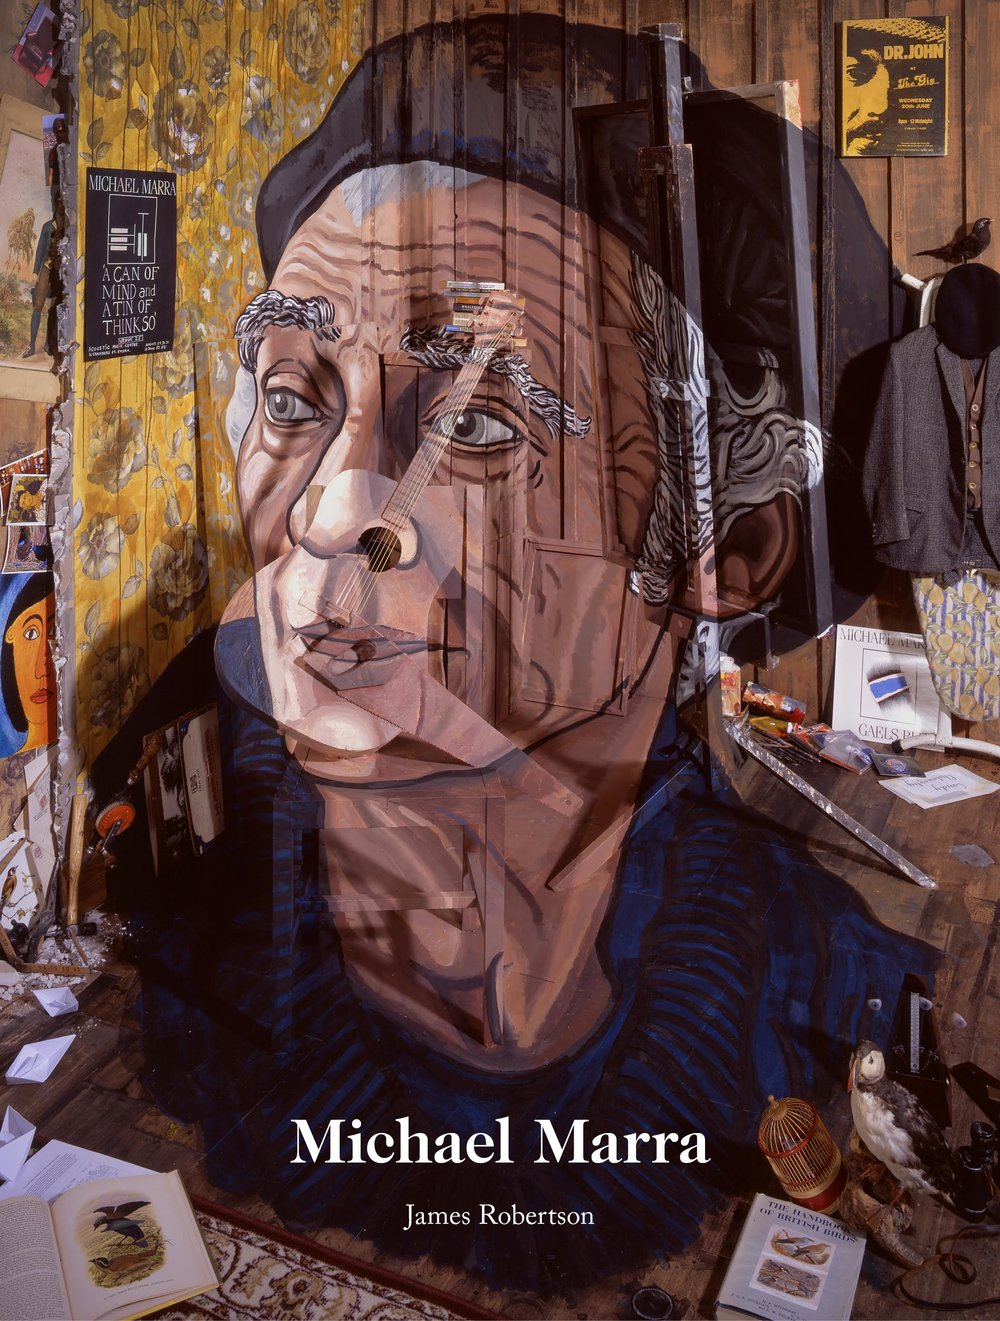 Michael Marra - Arrest This Moment (by James Robertson)